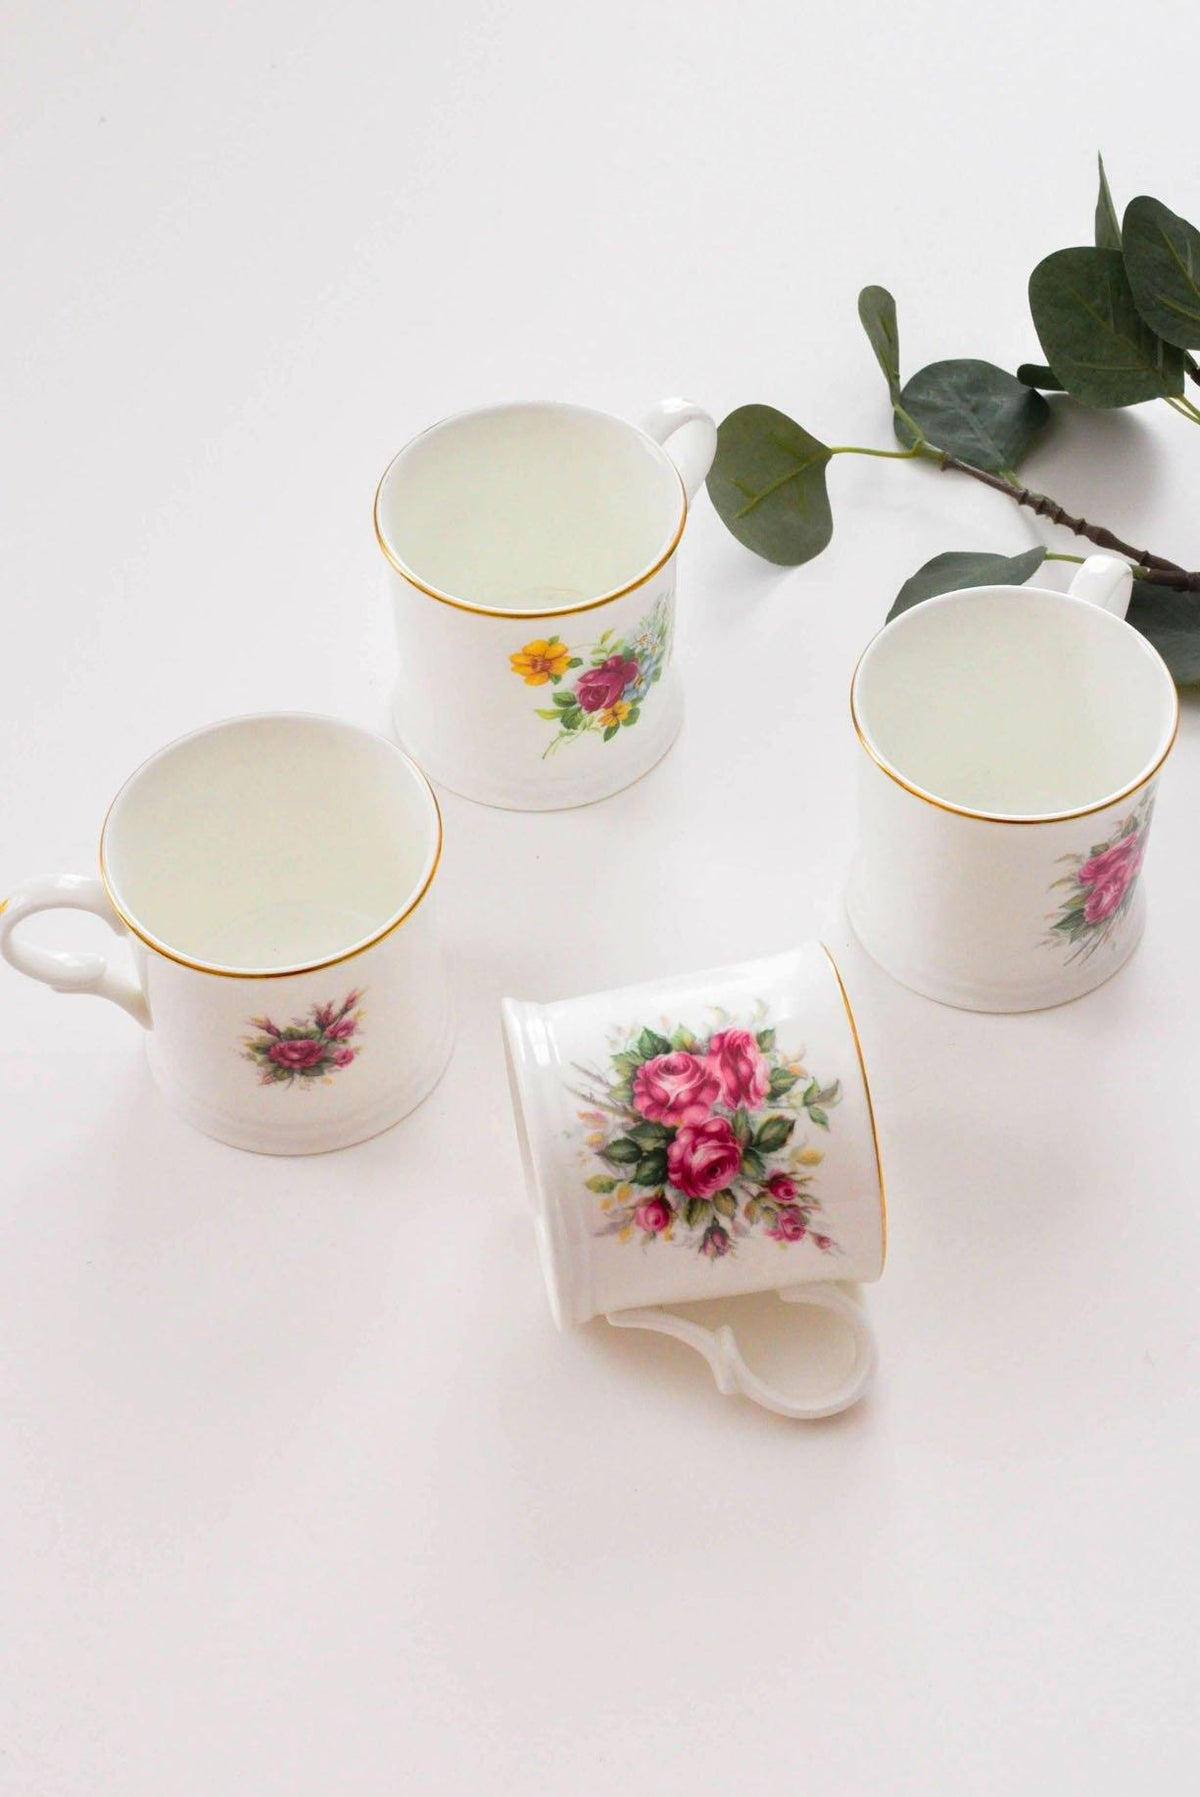 Set of 4 floral vintage mugs from Sweet & Spark.